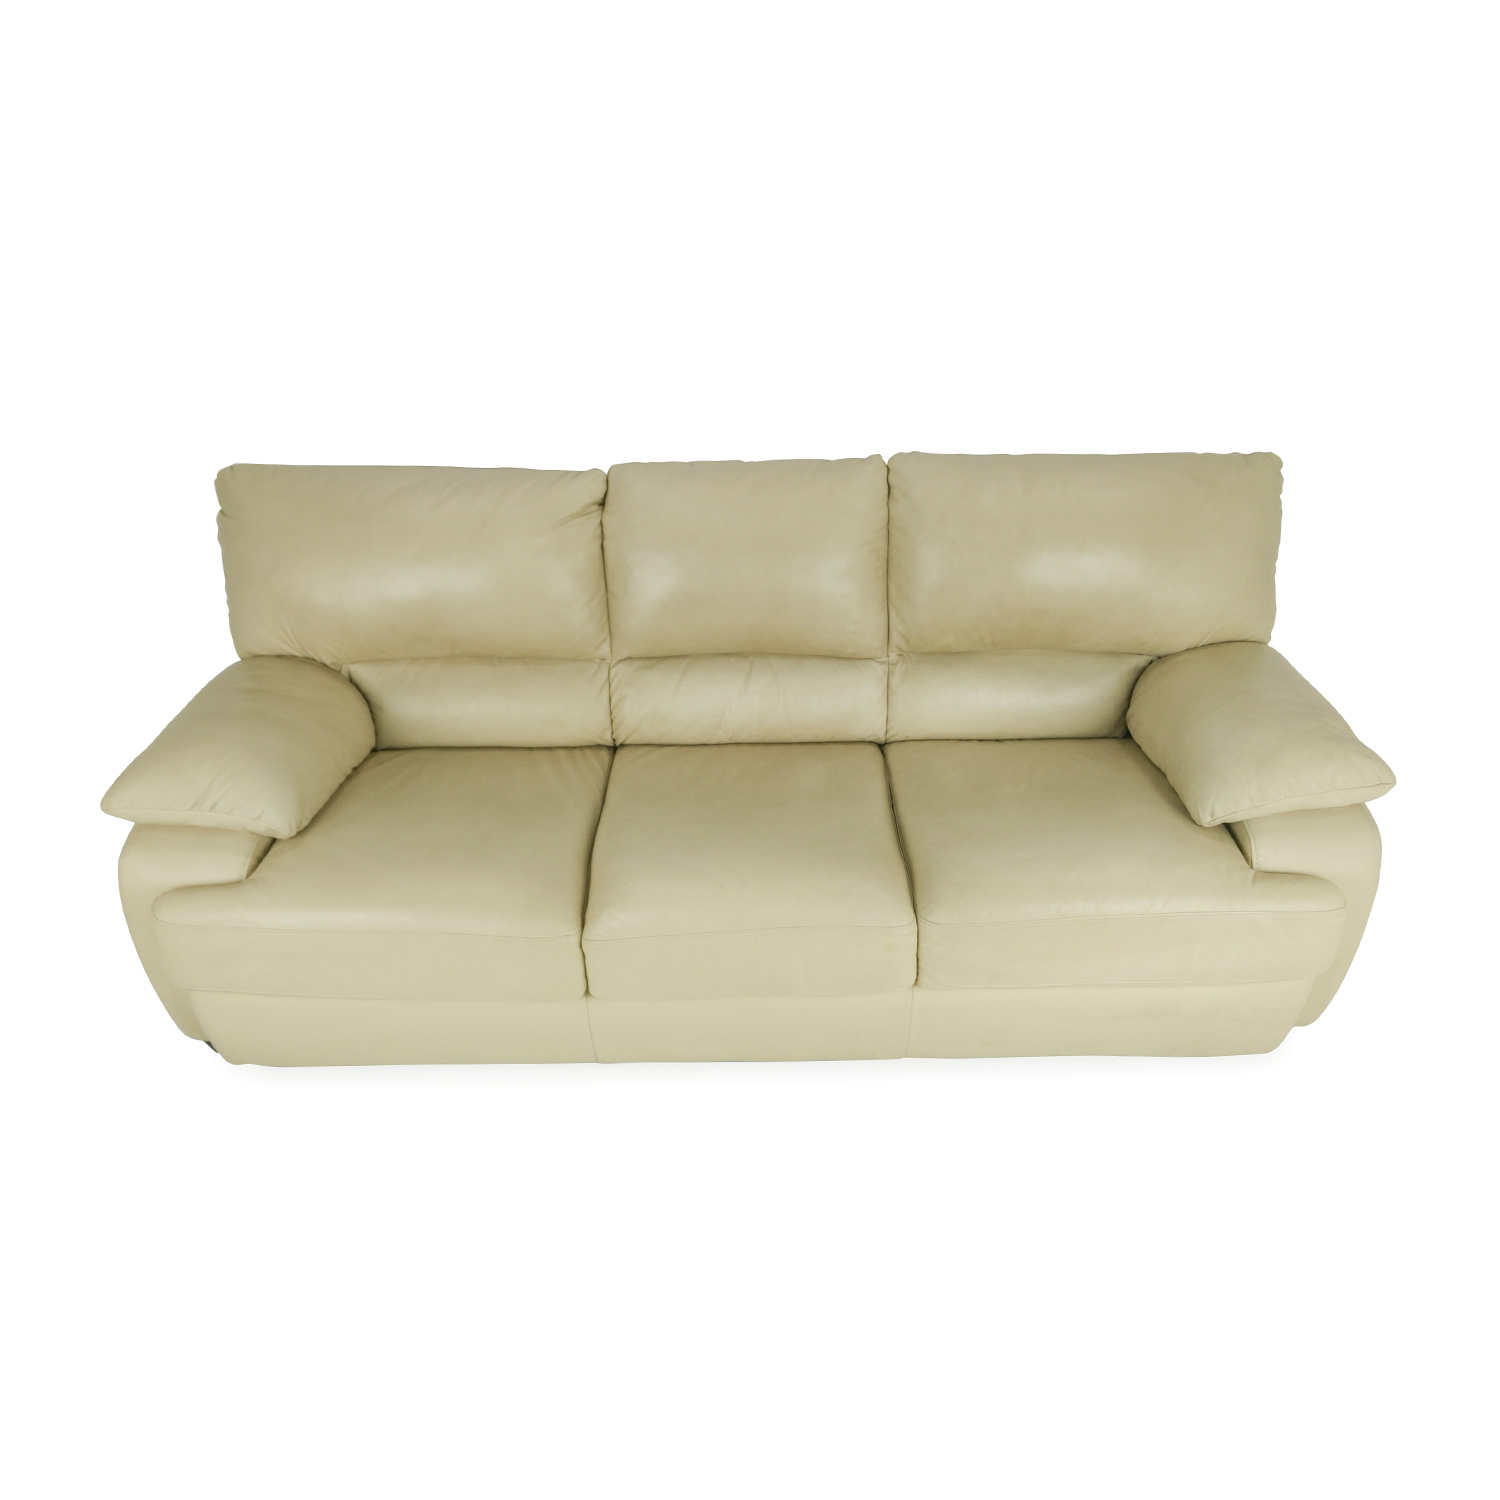 Couch Online Shop 75 Off Tan Leather Couch Sofas